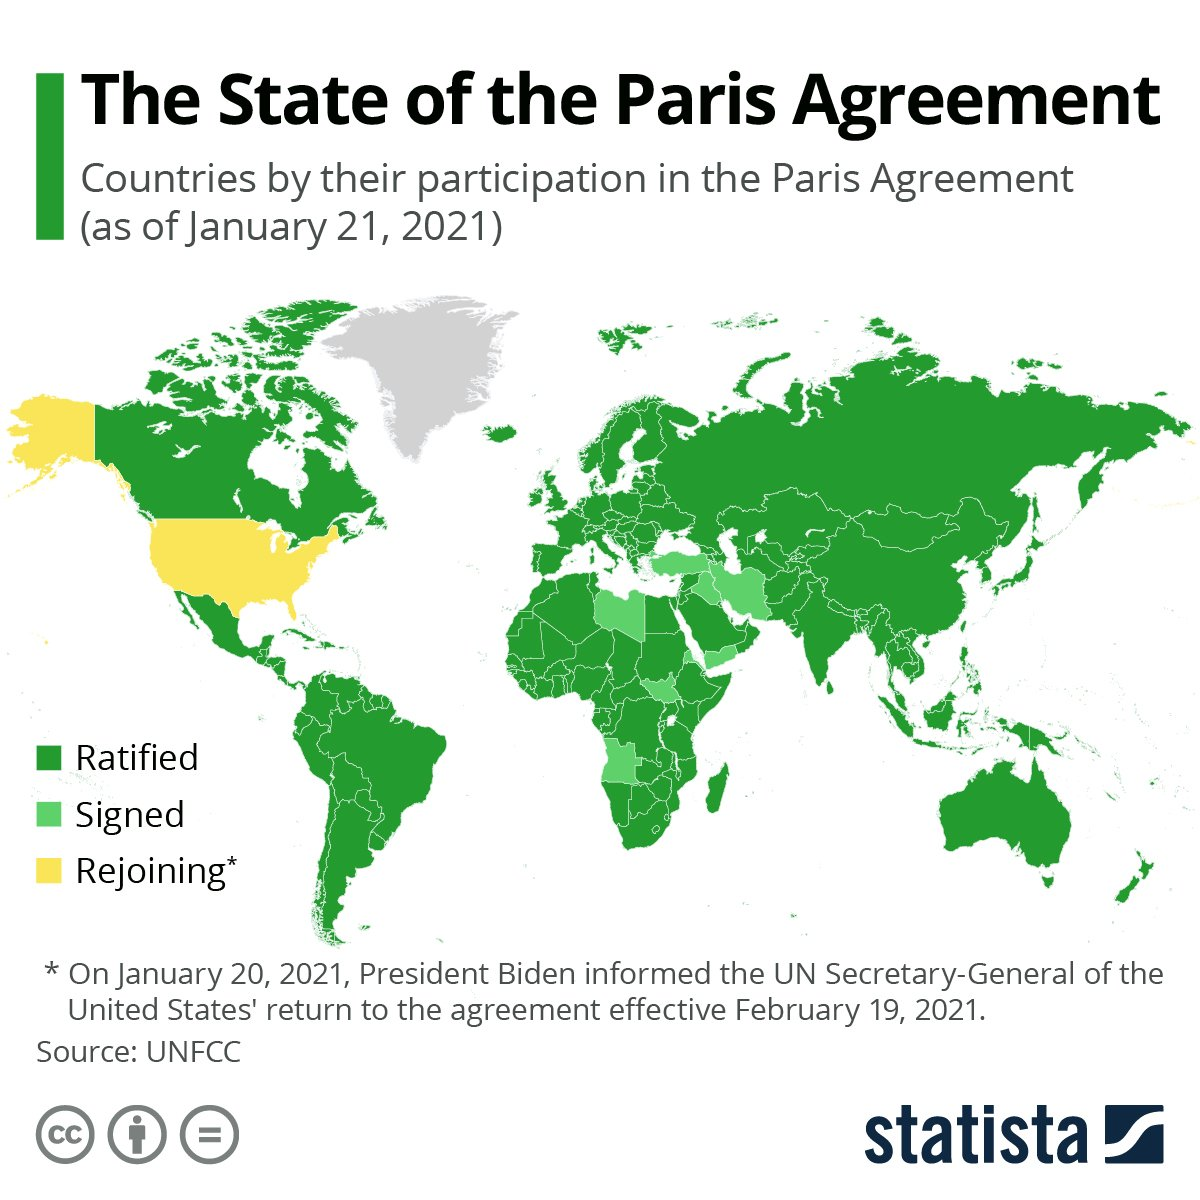 the Paris agreement - which countries are in?